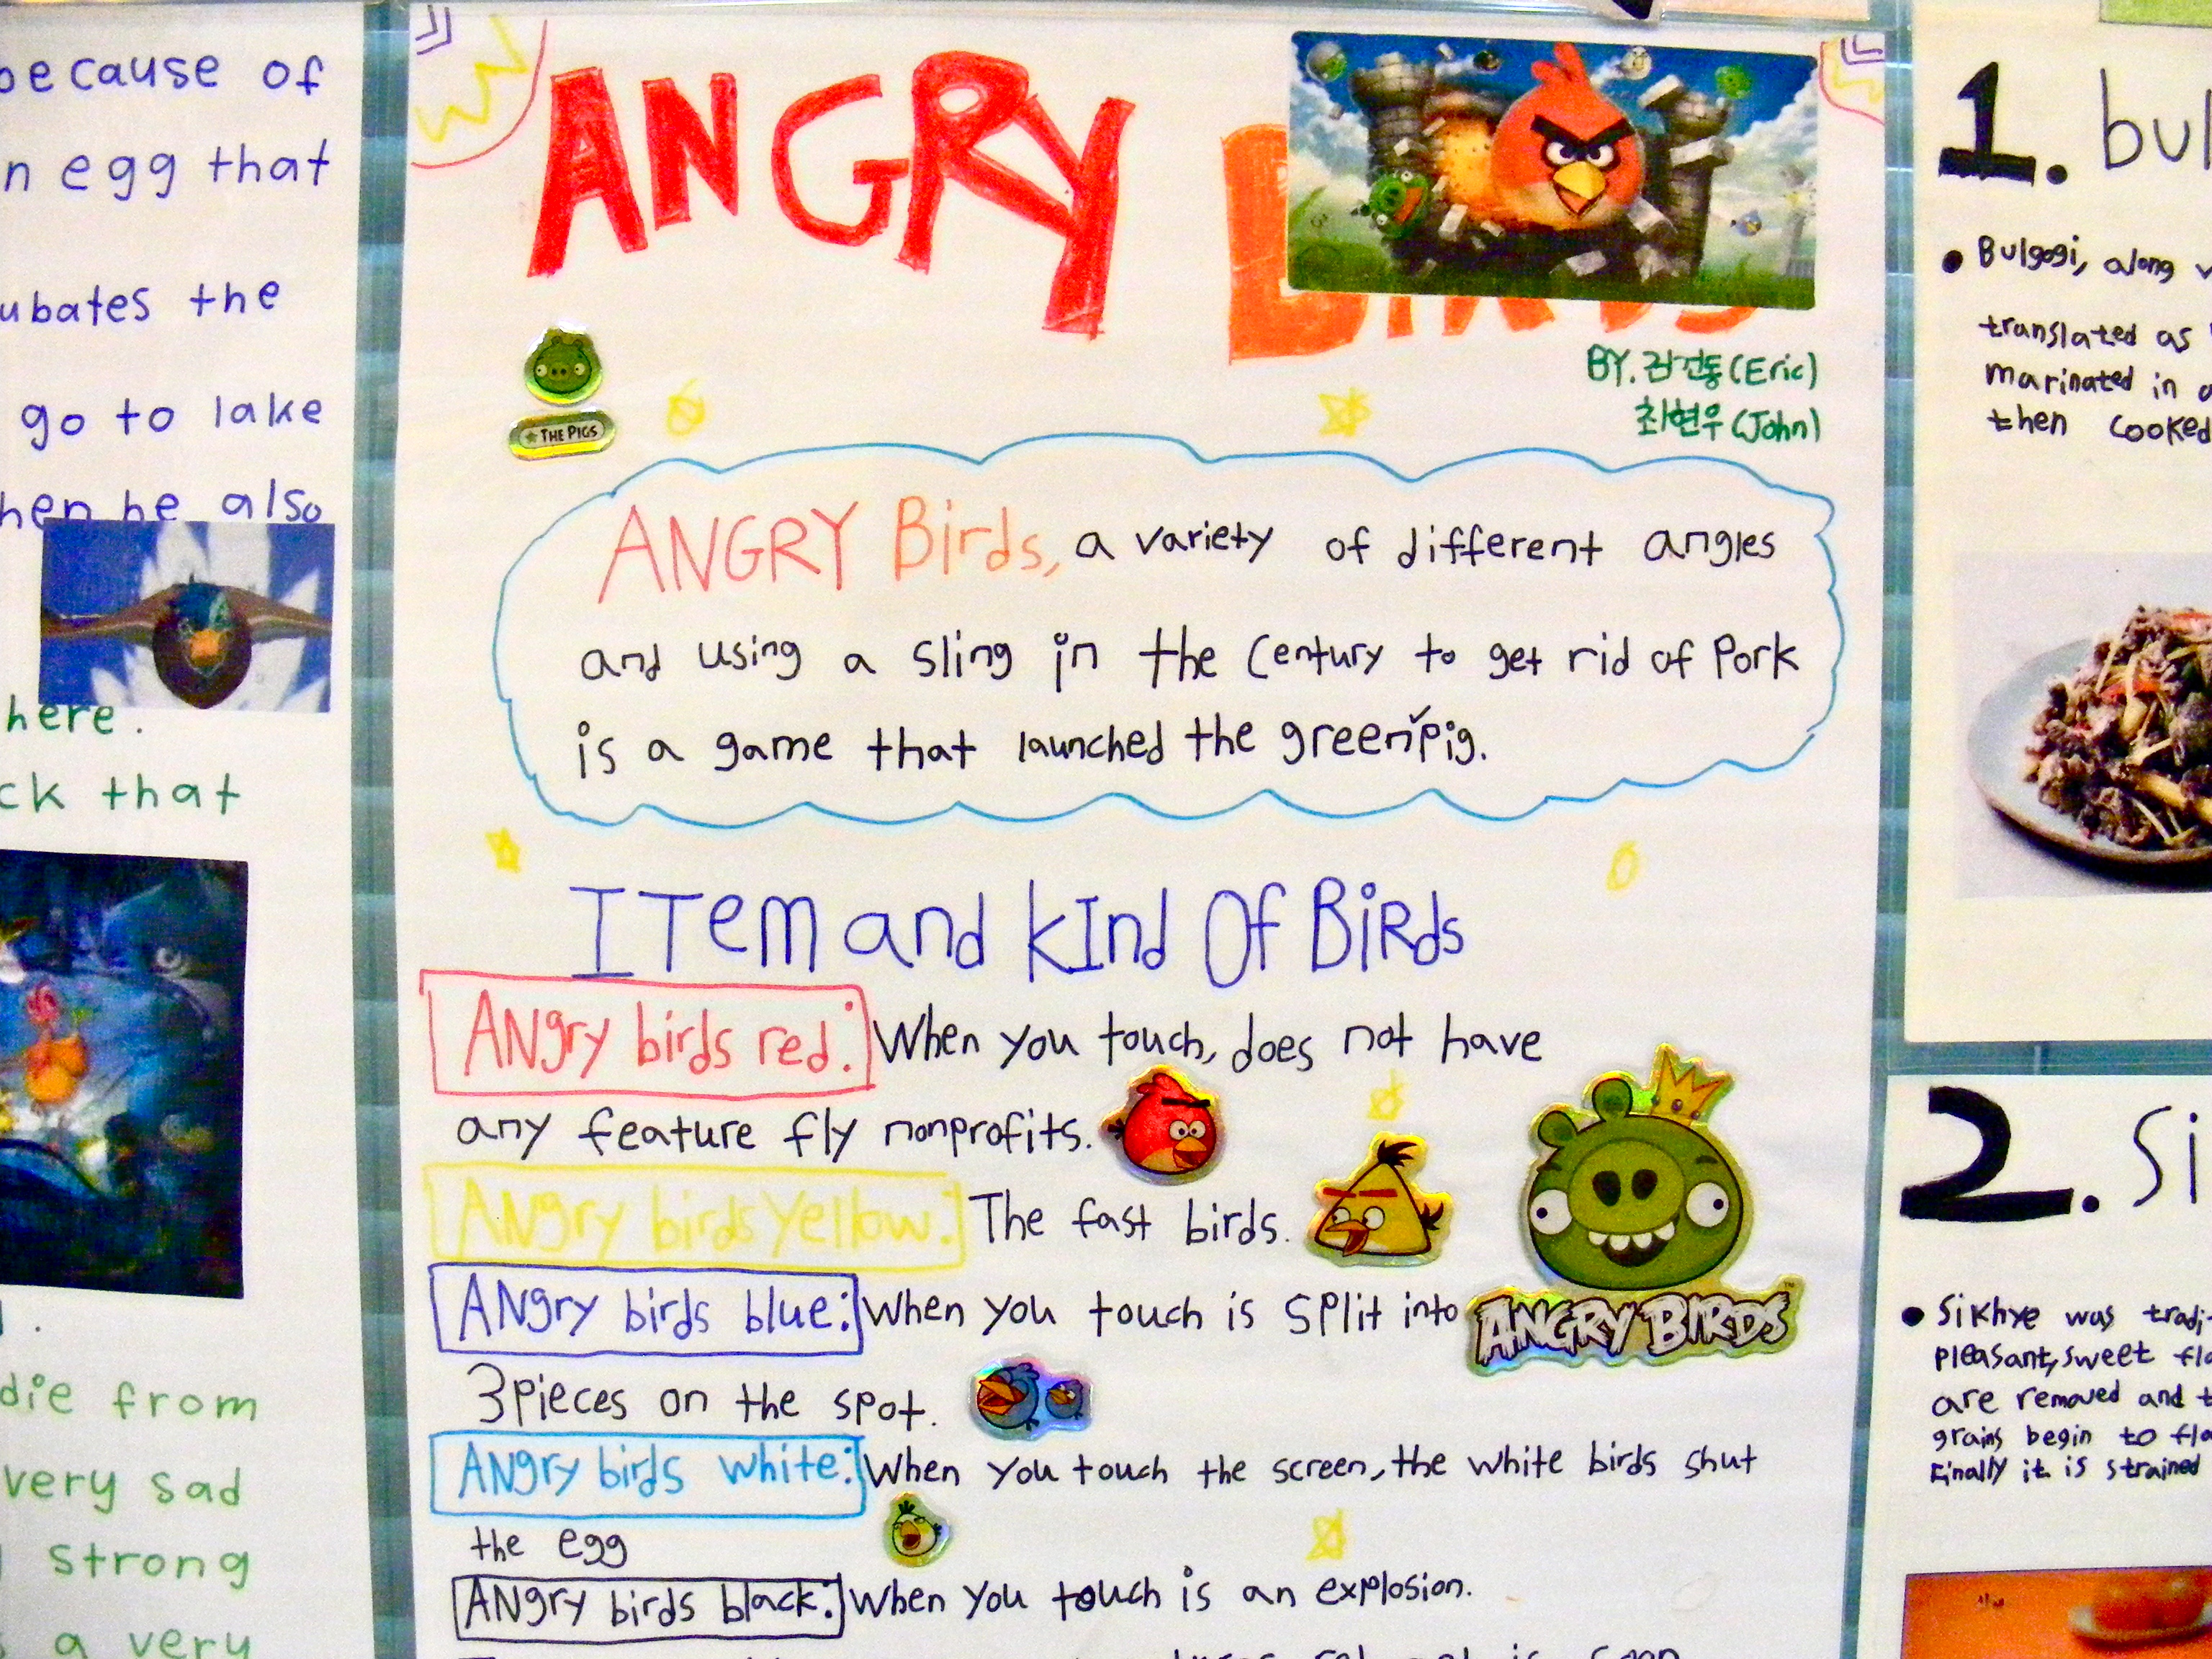 Obsessed-with-angry-birds